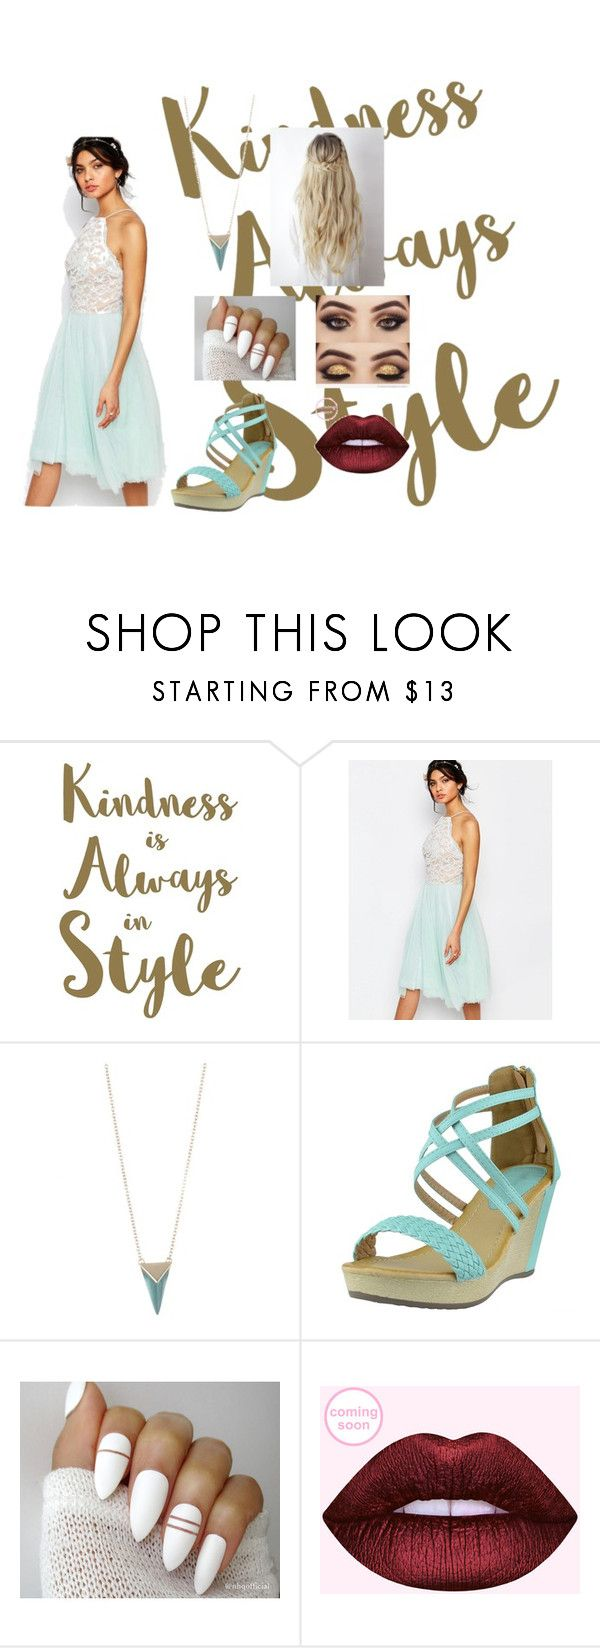 """Untitled #32"" by moriartylauren on Polyvore featuring beauty, Sixtrees, Jarlo and Alexis Bittar"